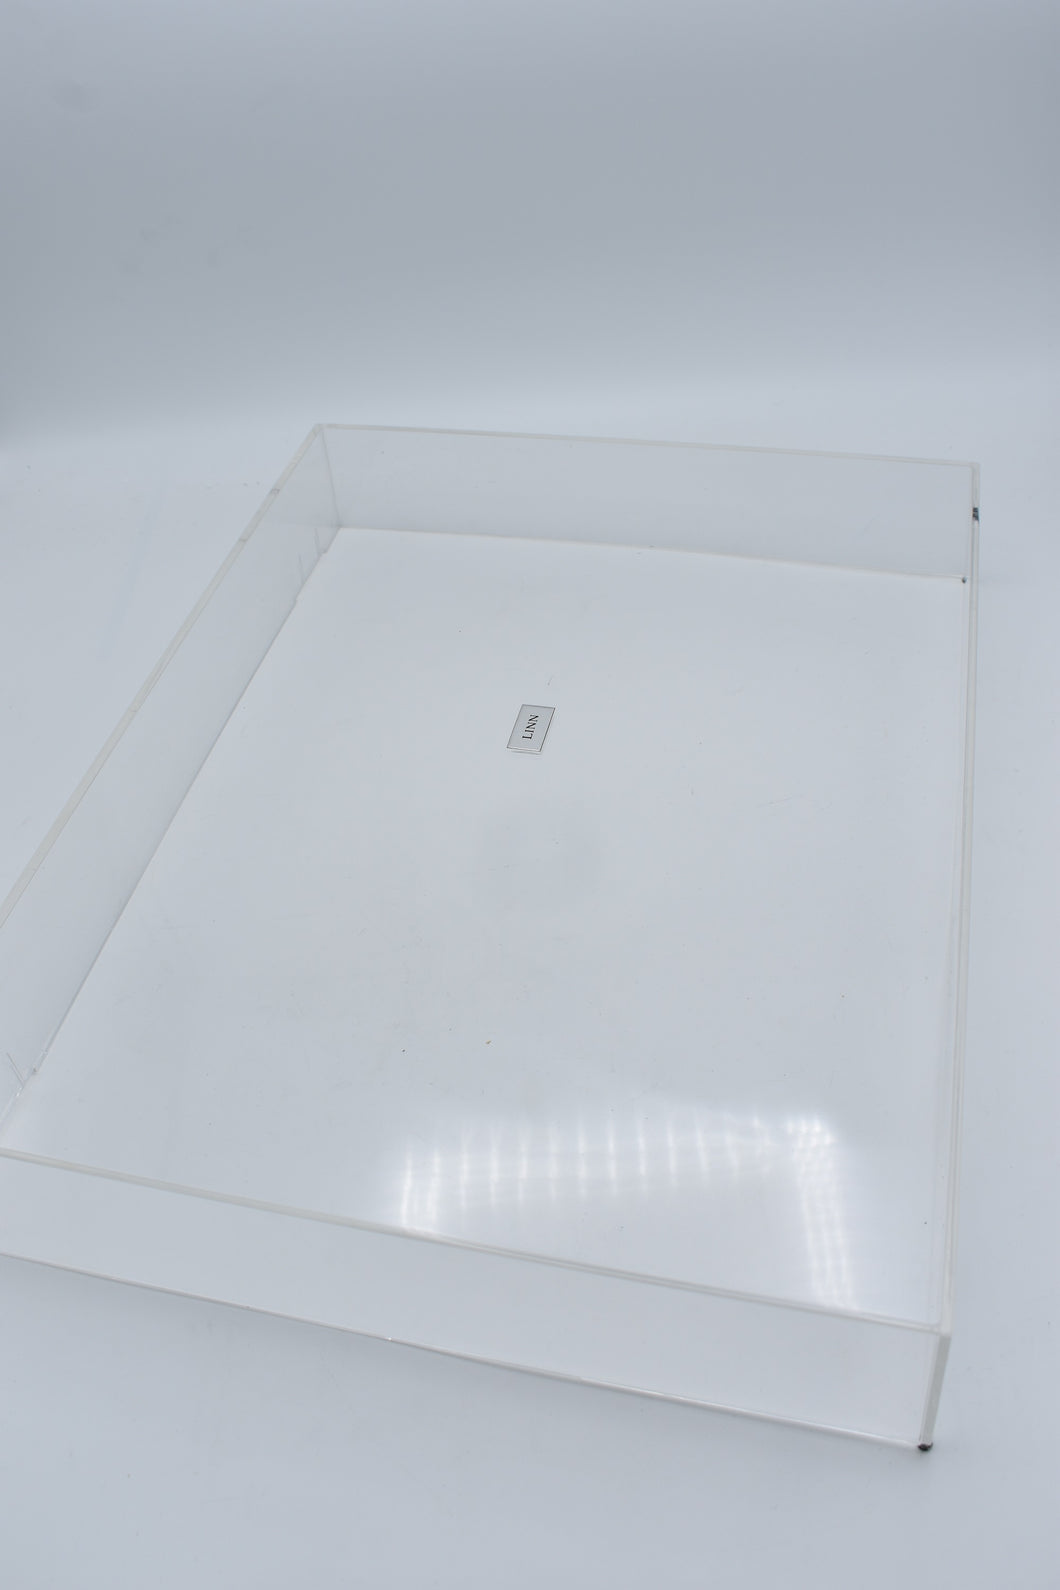 Linn LP12 Clear Lid  (Preowned, Ref 001309)